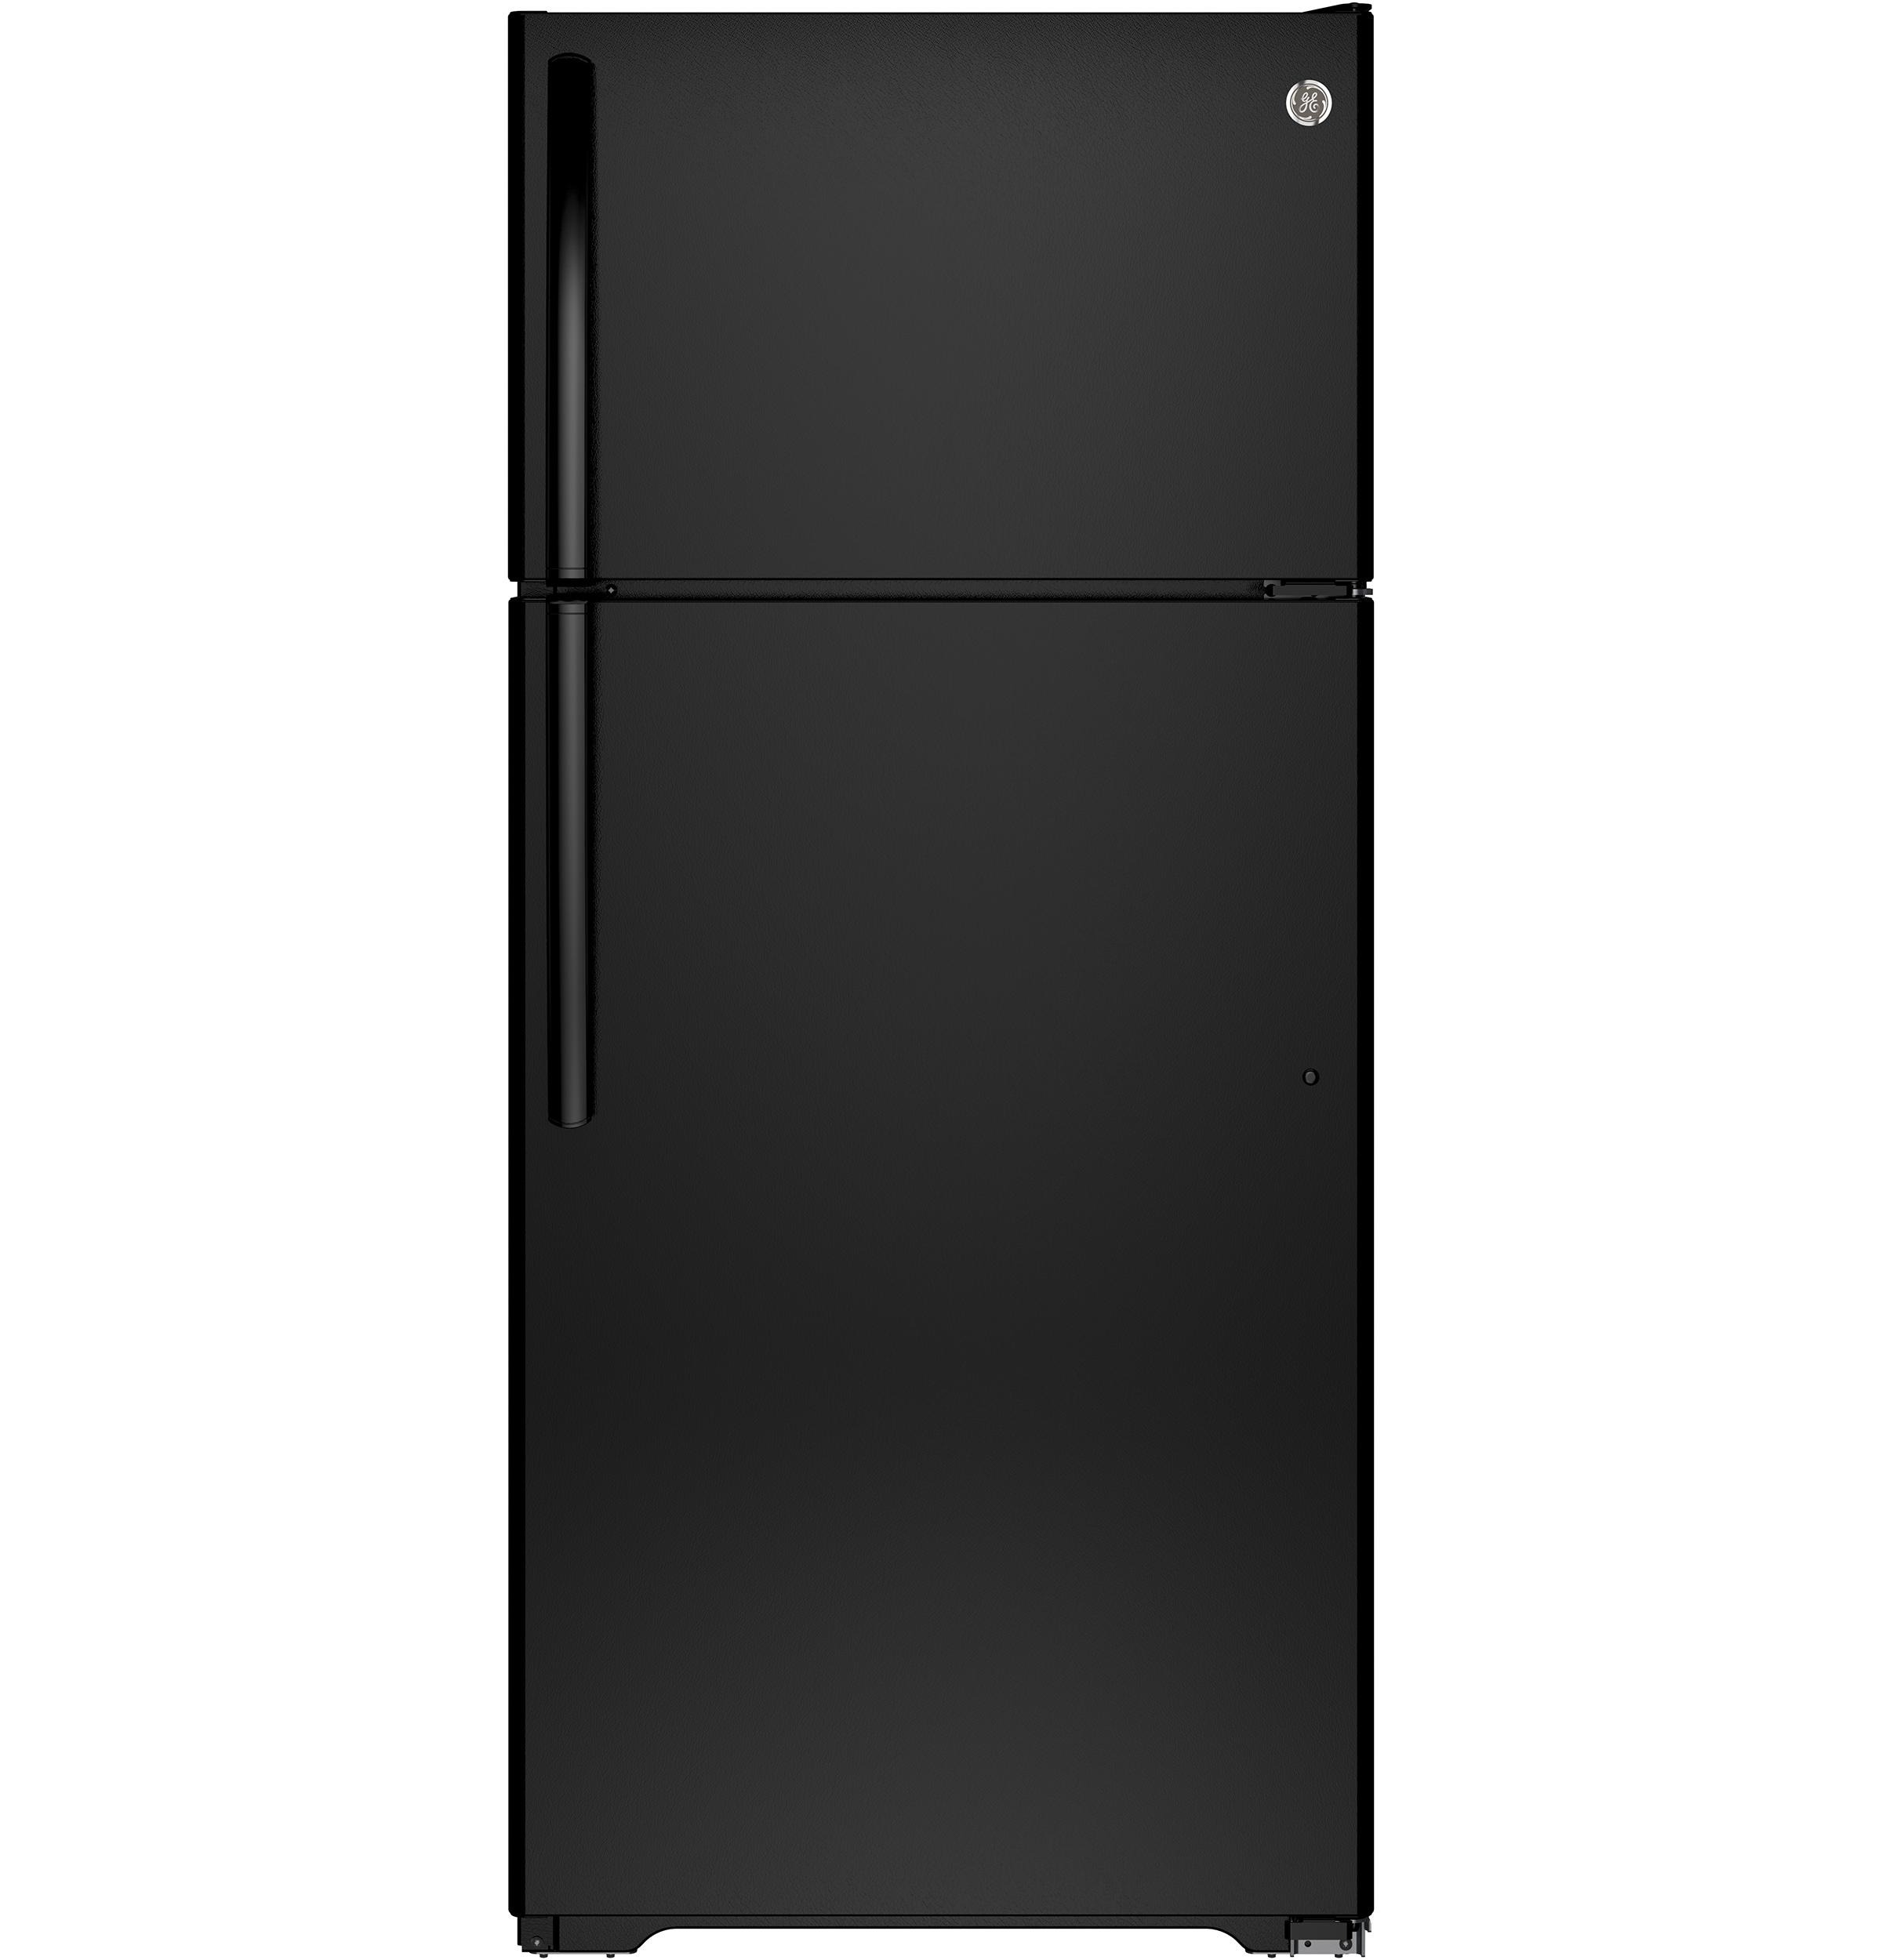 GE(R) ENERGY STAR(R) 15.5 Cu. Ft. Top-Freezer Refrigerator